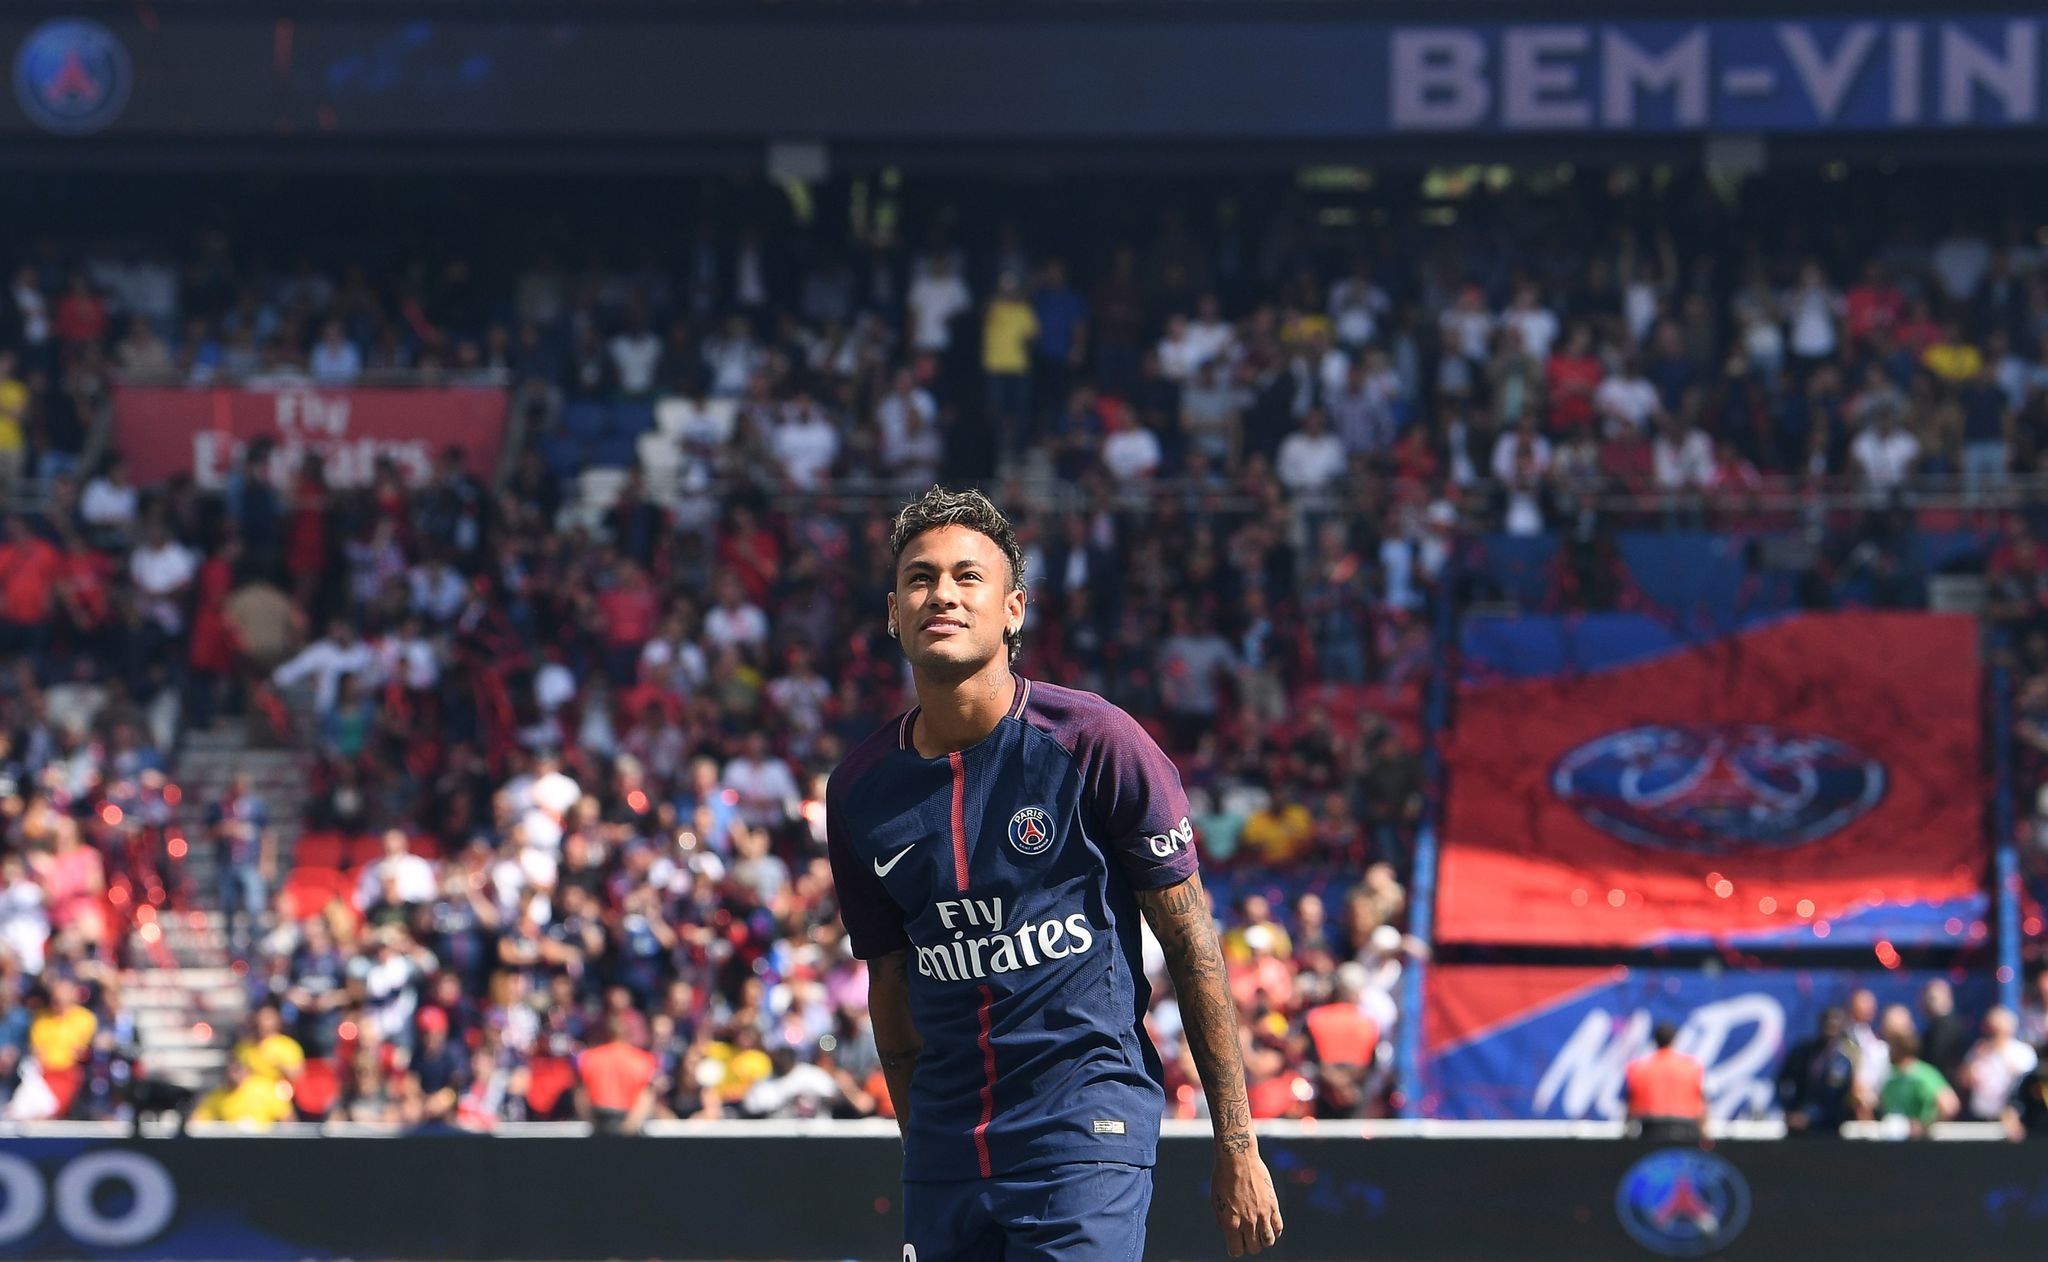 Paris Saint-Germains Brazilian forward <HIT>Neymar</HIT> looks on during his presentation to the fans at the Parc des Princes stadium in Paris on August 5, 2017. Brazil superstar <HIT>Neymar</HIT> will watch from the stands as Paris Saint-Germain open their season on August 5, 2017, but the French club have already clawed back around a million euros on their world record investment. <HIT>Neymar</HIT>, who signed from <HIT>Barcelona</HIT> for a mind-boggling 222 million euros ($264 million), is presented to the <HIT>PSG</HIT> support prior to his new teams first game of the Ligue 1 campaign against promoted Amiens. / AFP PHOTO / ALAIN JOCARD